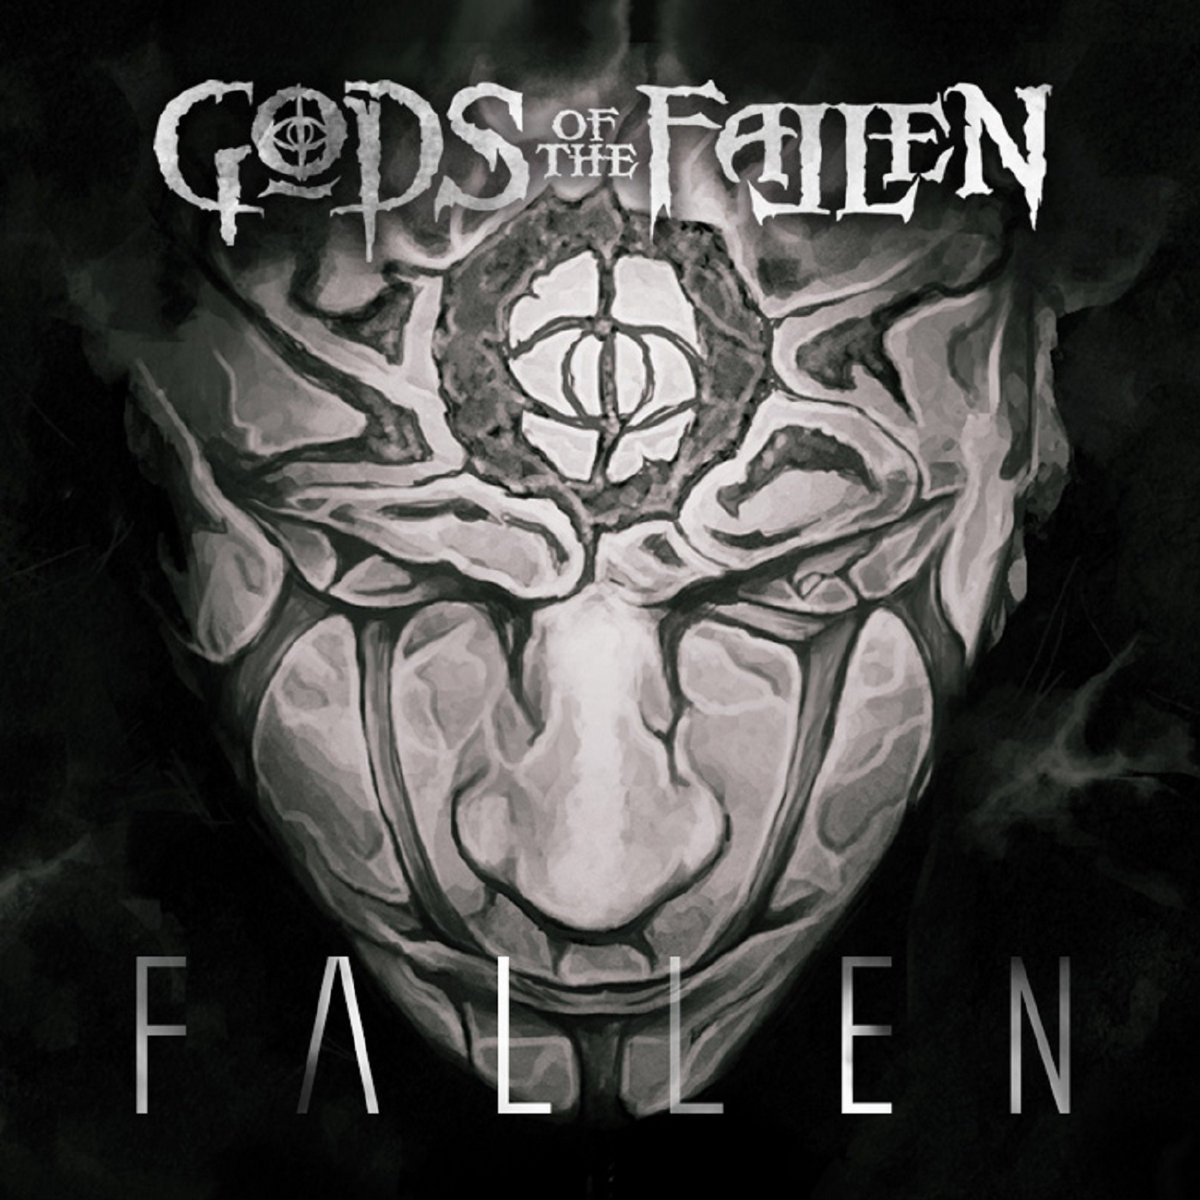 INTERVIEW WITH GODS OF THE FALLEN (MODERN METAL)